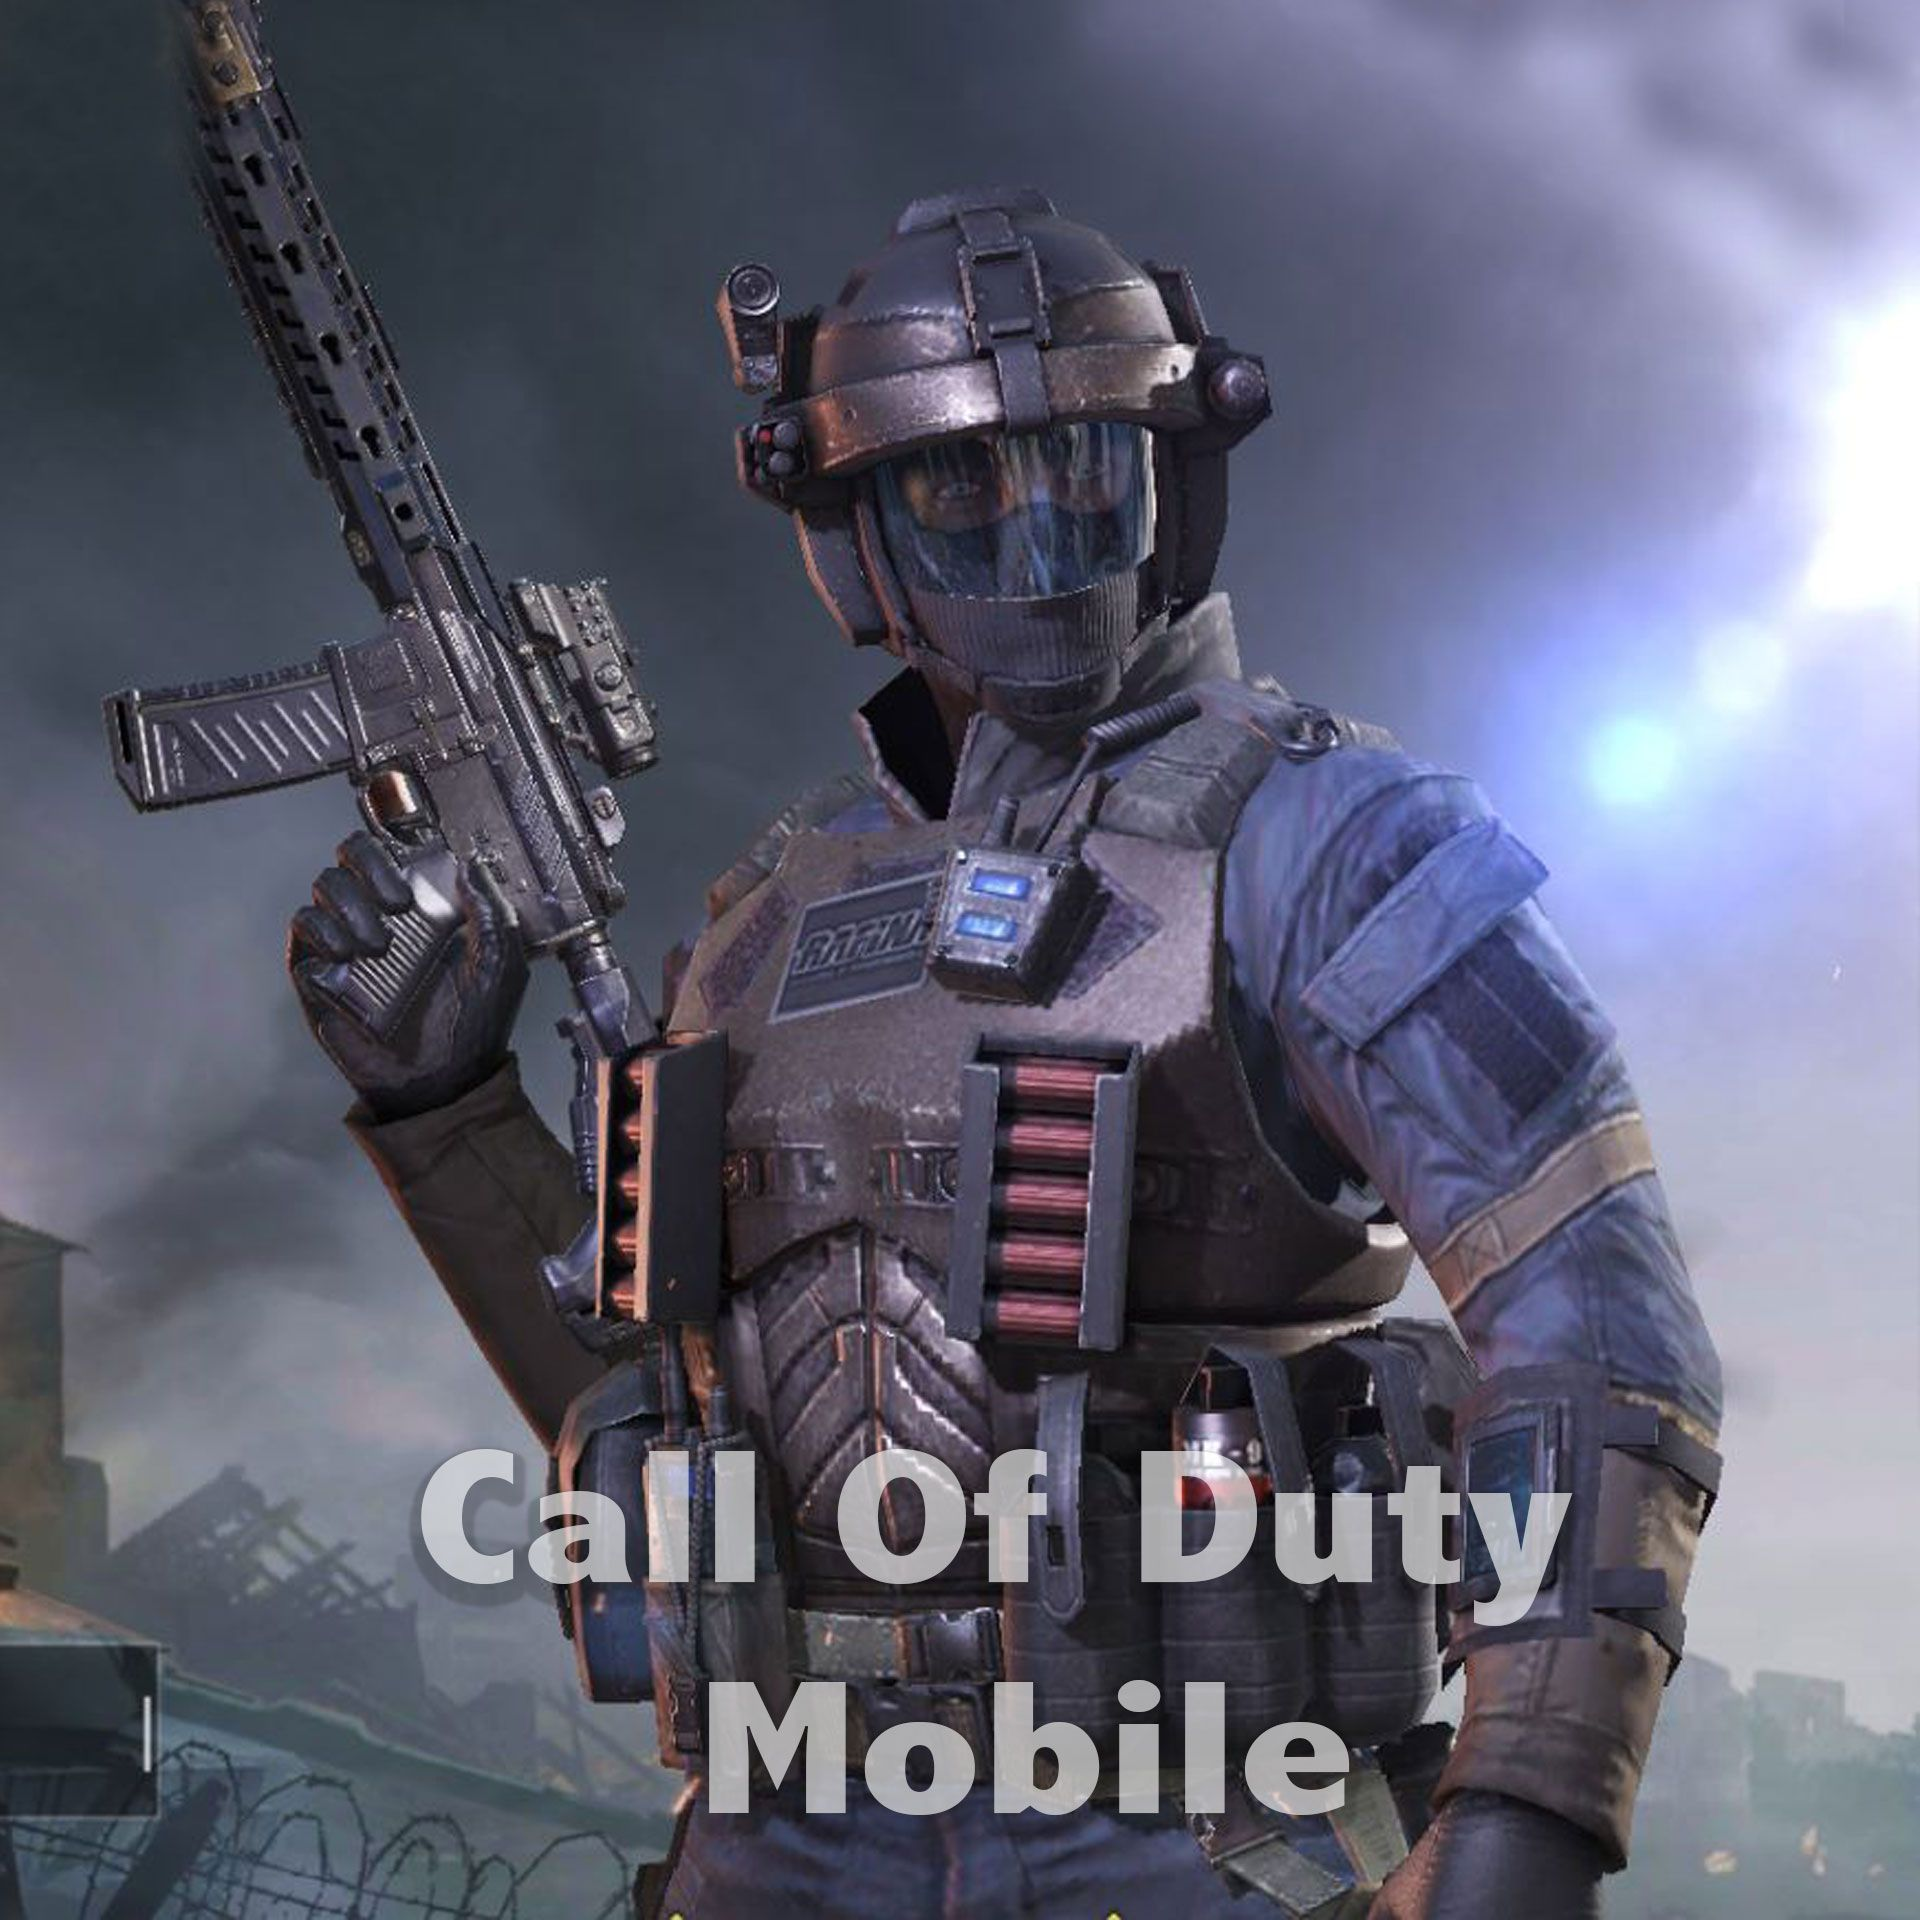 Call of duty mobile game, After the Arena of PUBG Mobile ...